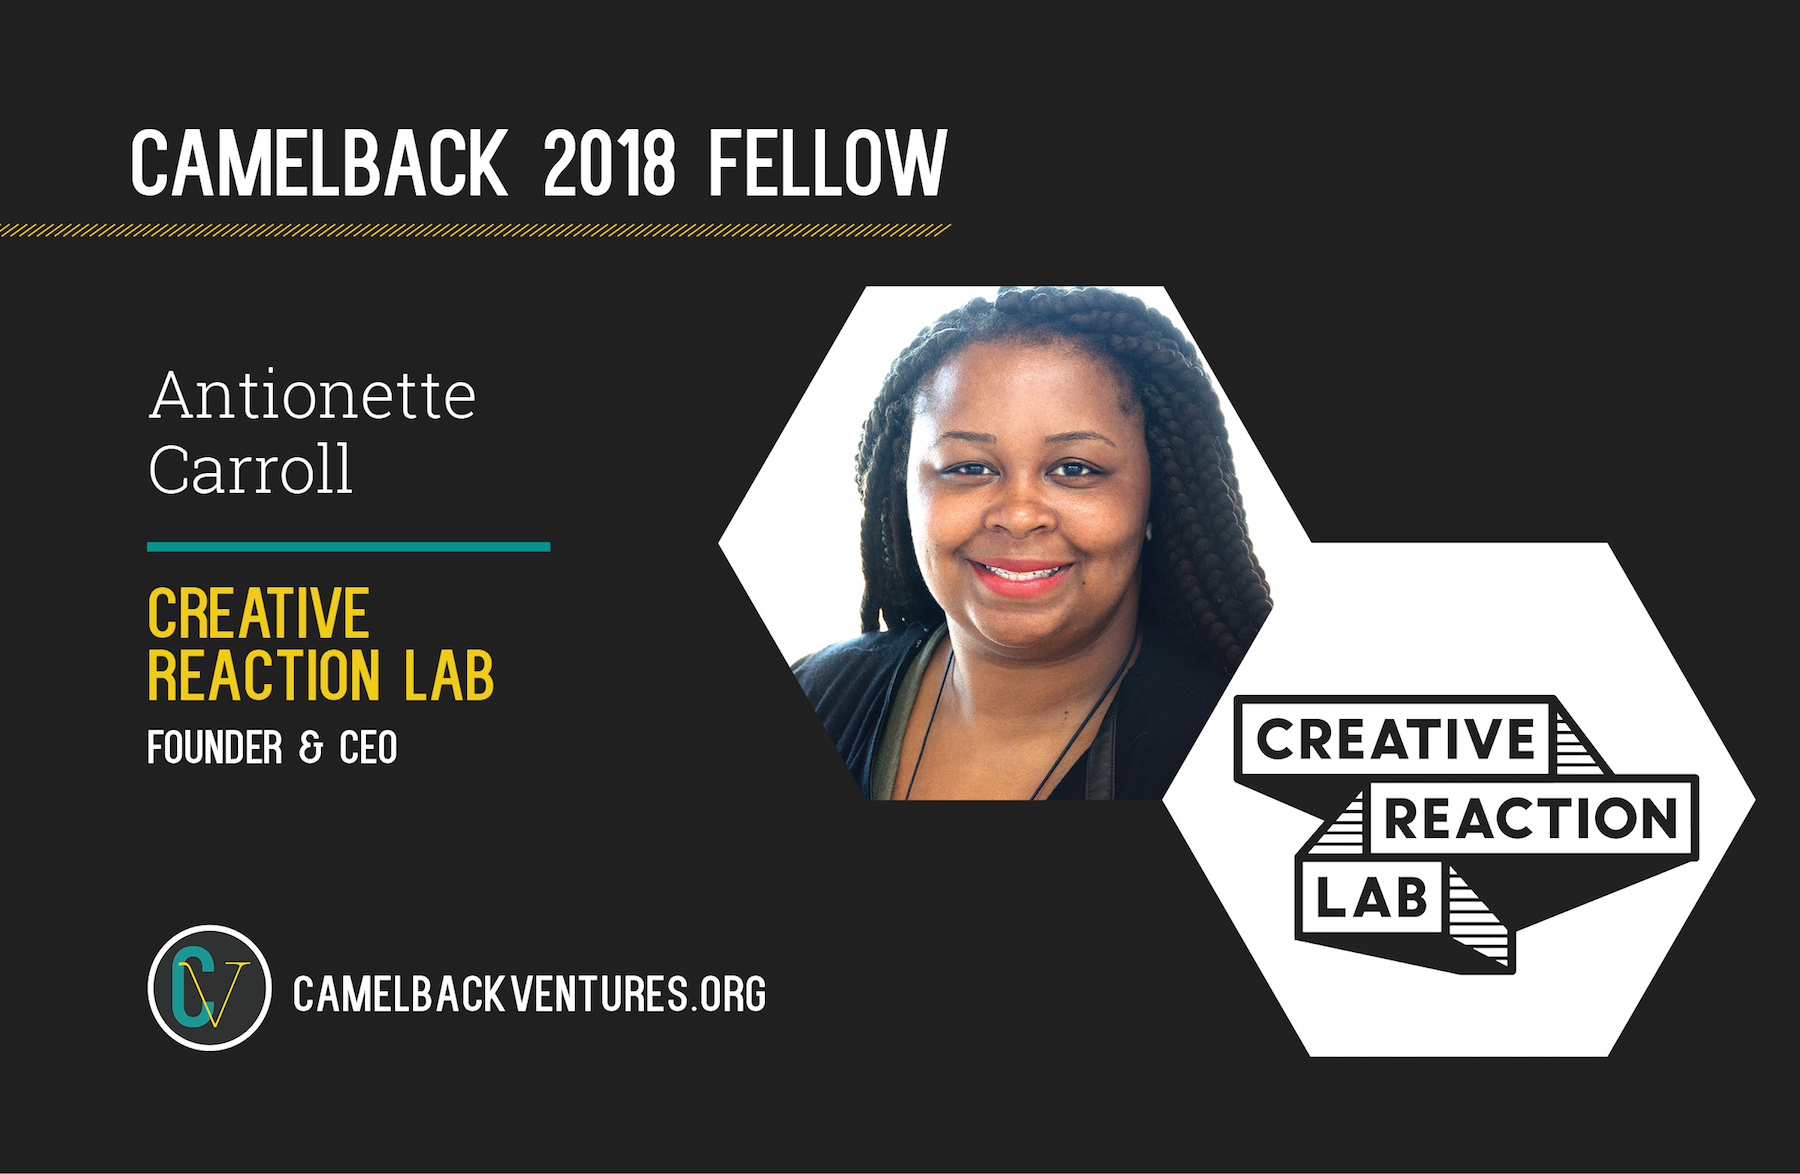 2018camelbackfellows_antionette.jpg